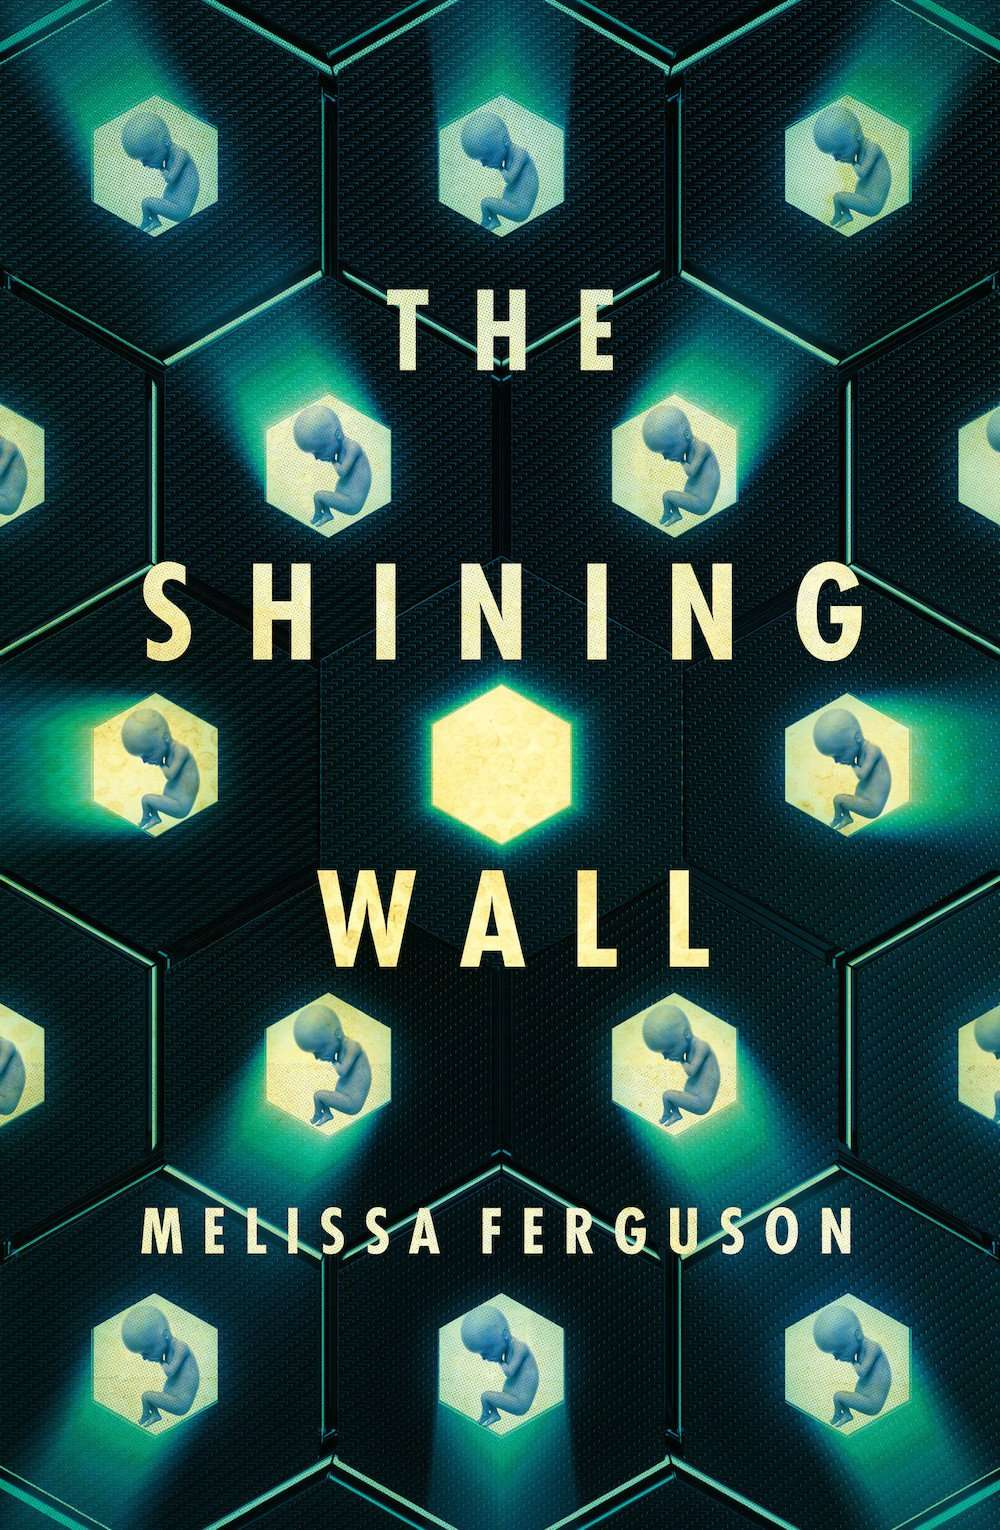 The Shining Wall by Melissa Ferguson